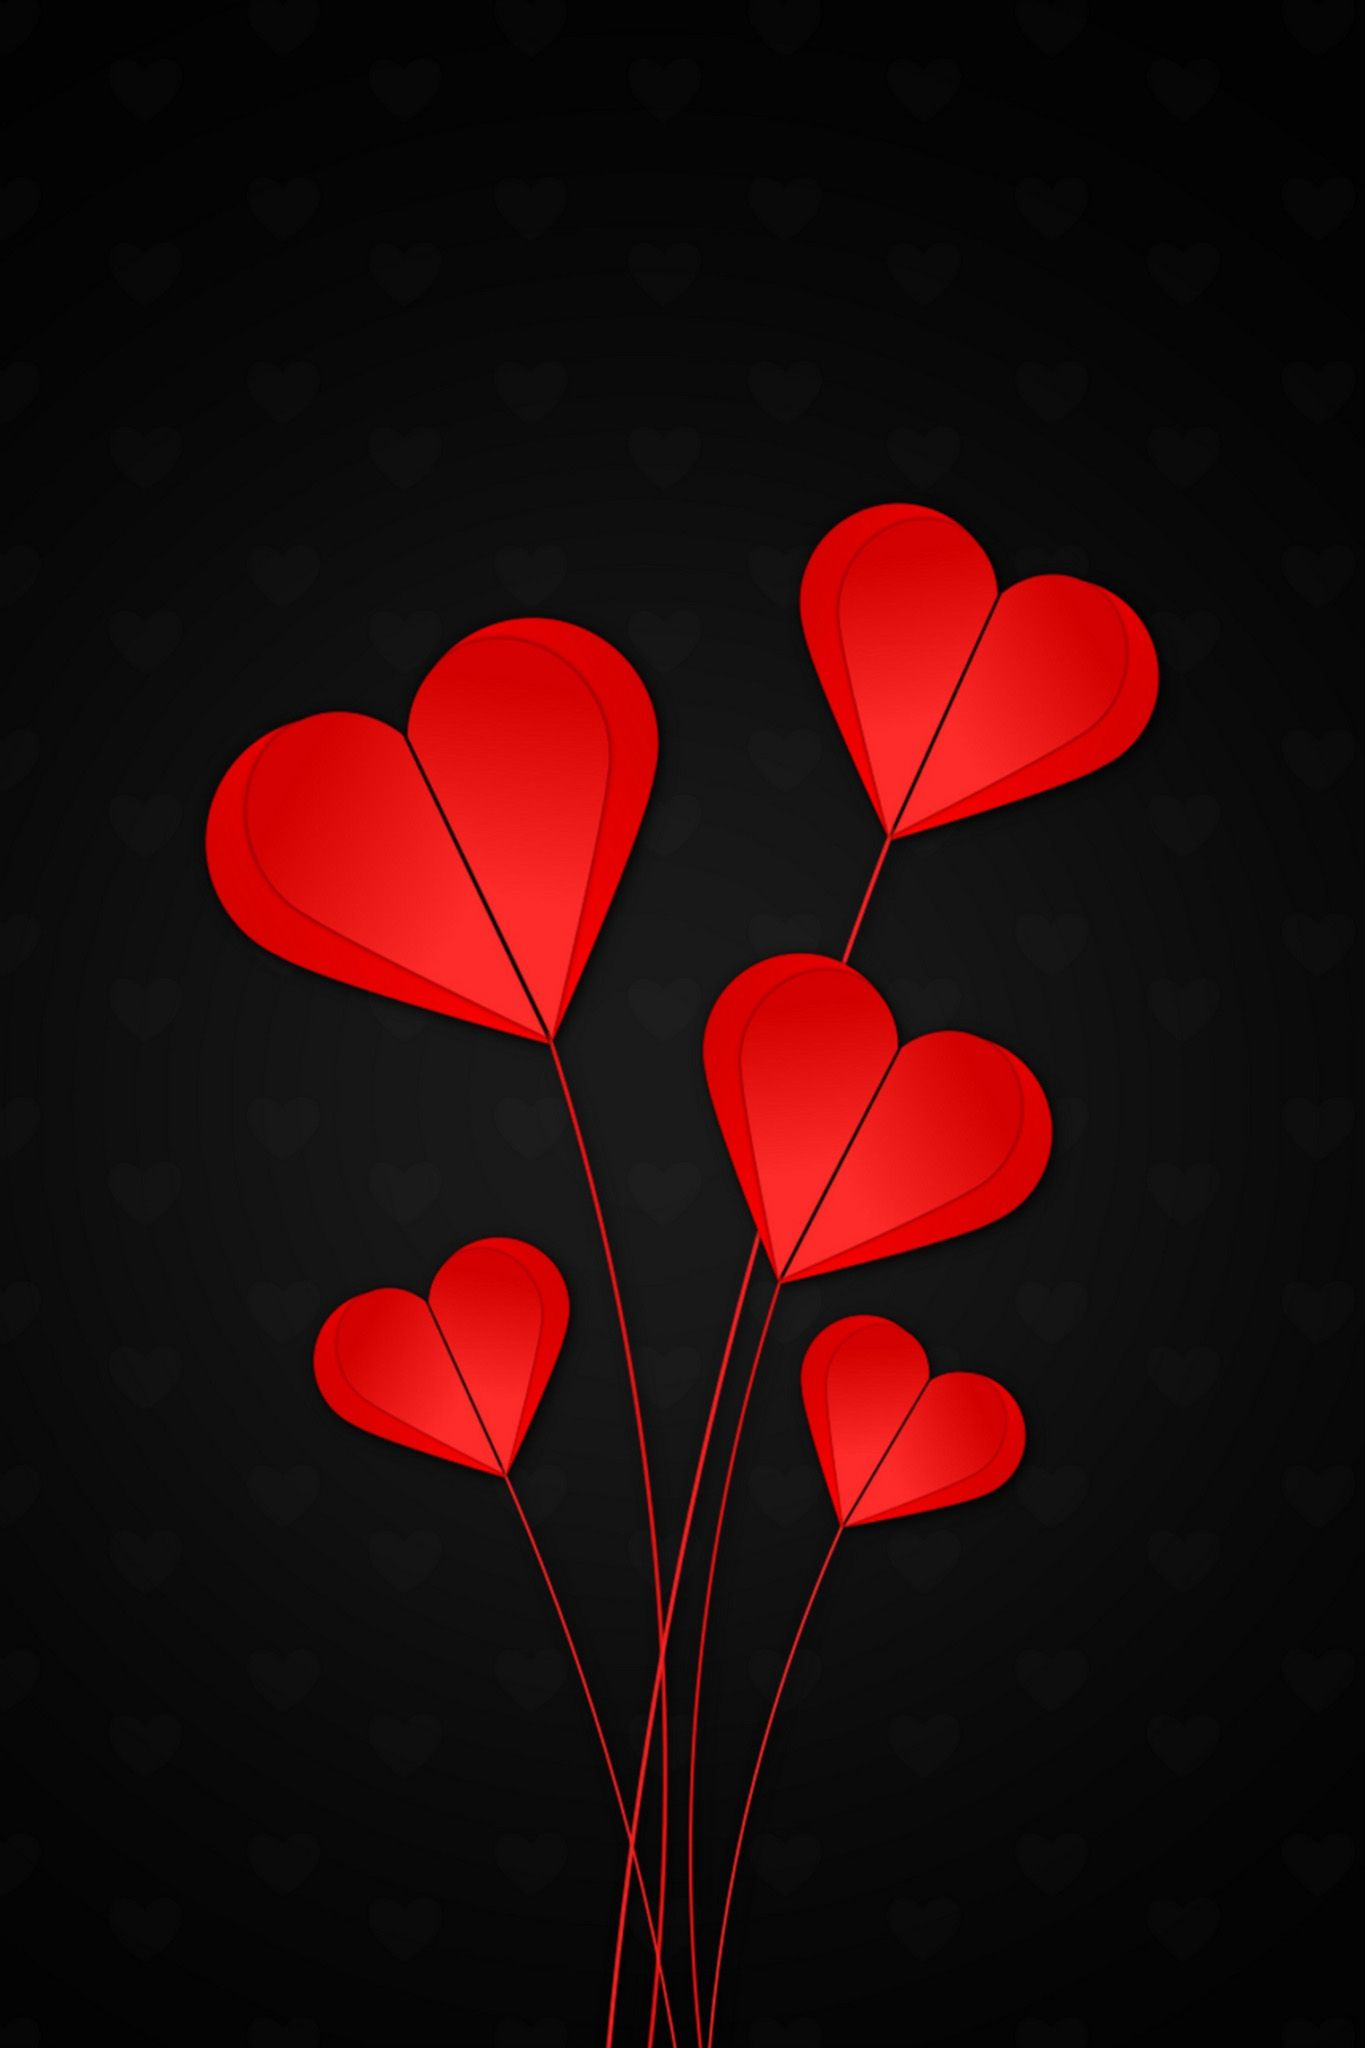 Hearts Red Black Background 120112 1350x2400 In 2021 Heart Iphone Wallpaper Red And Black Background Heart Wallpaper Iphone heart wallpaper hd 1080p free